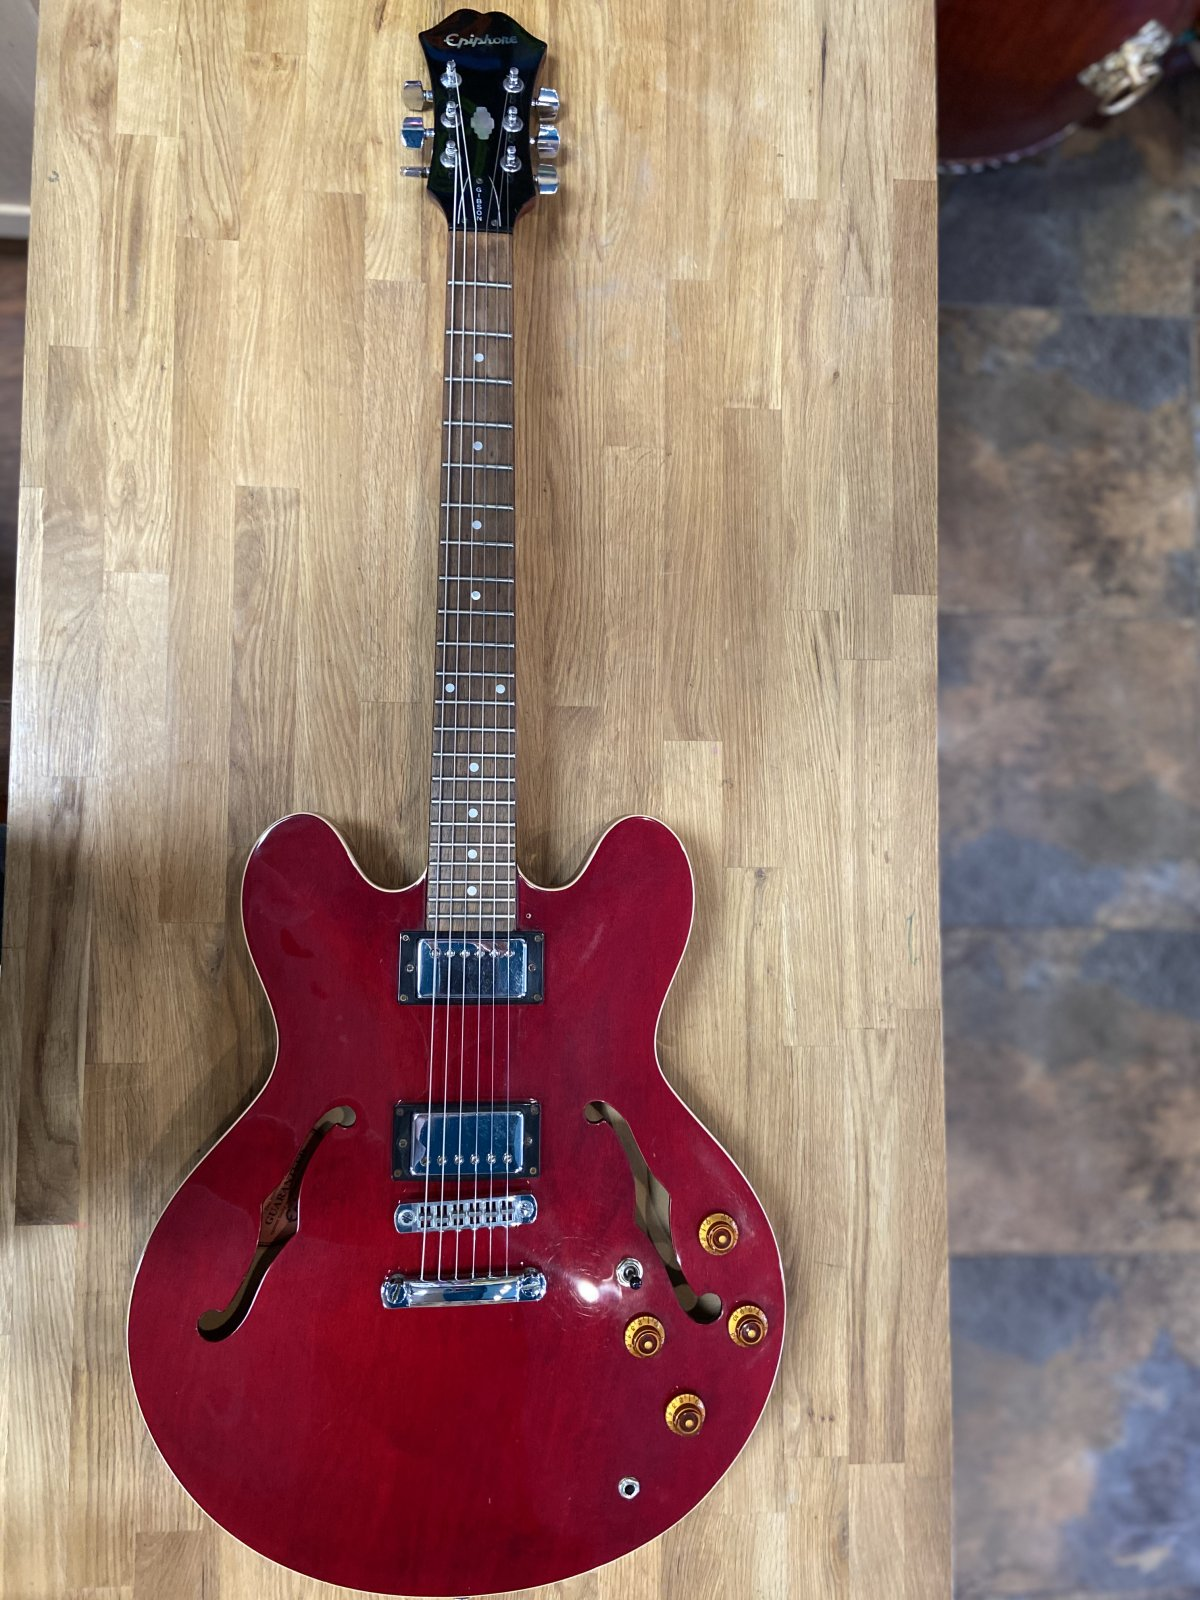 1997 Epiphone DOT Semi-Hollow Electric Guitar w/Case